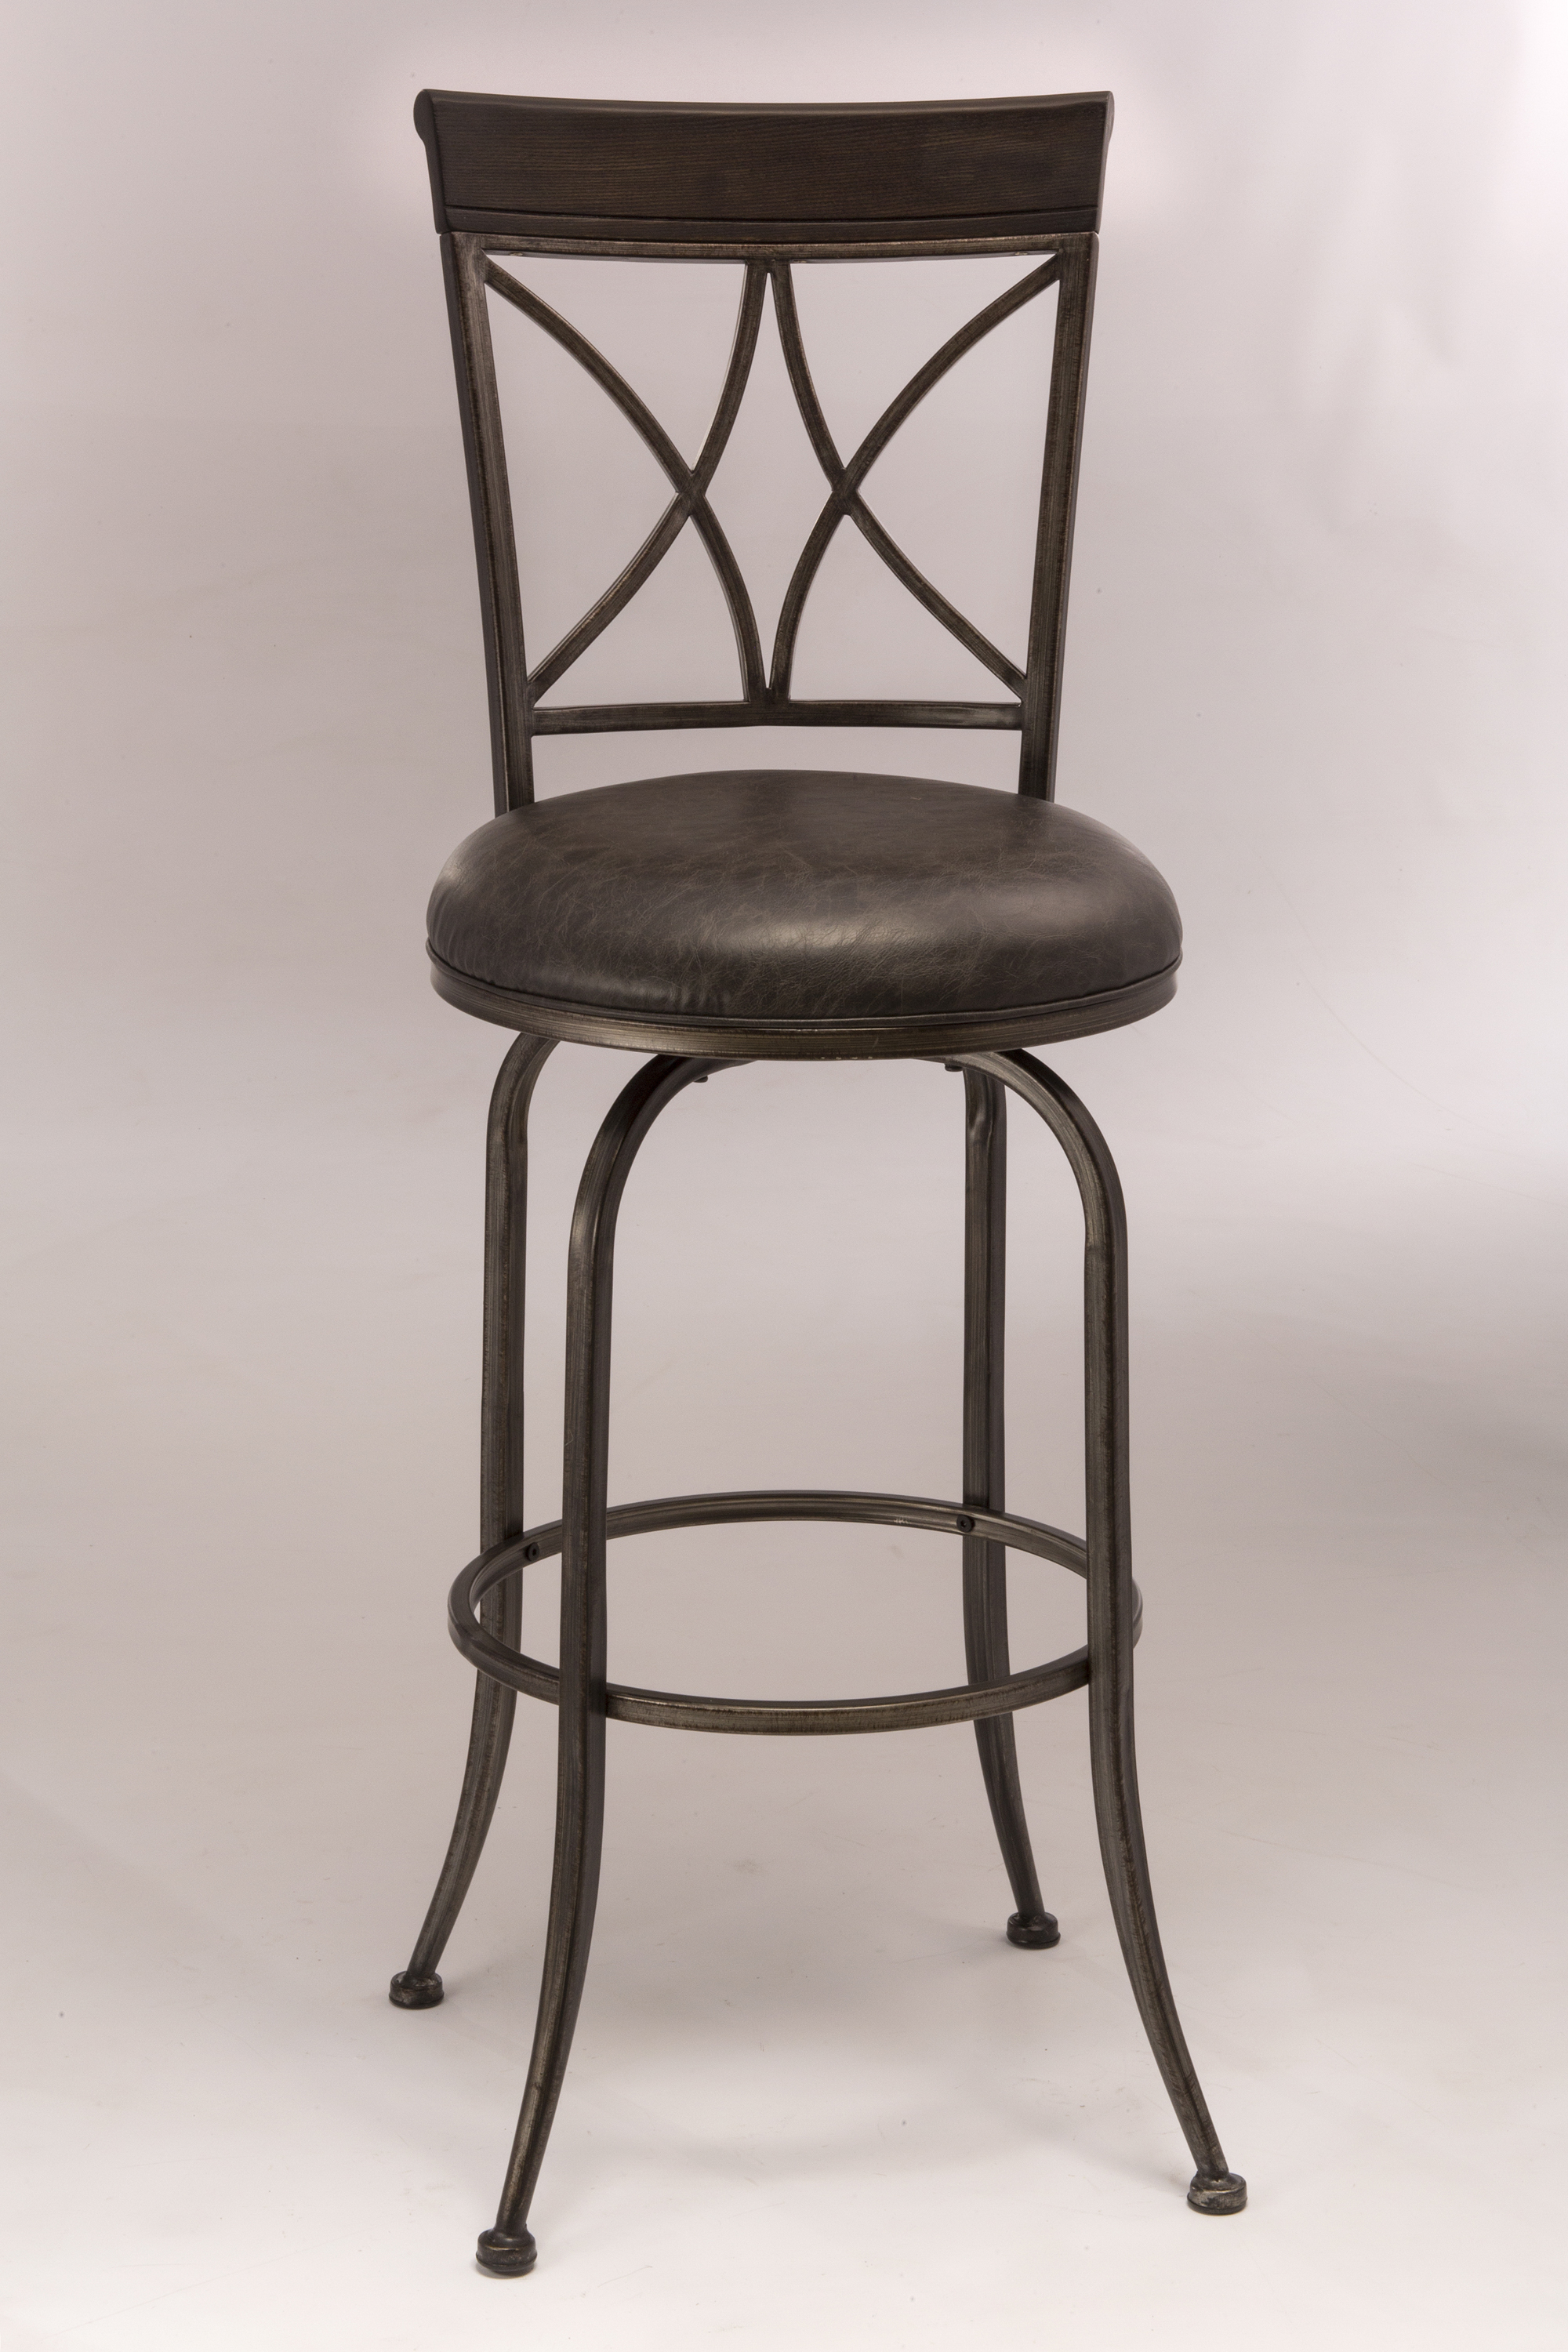 Hillsdale Metal Stools Swivel Bar Stool - Item Number: 5772-830